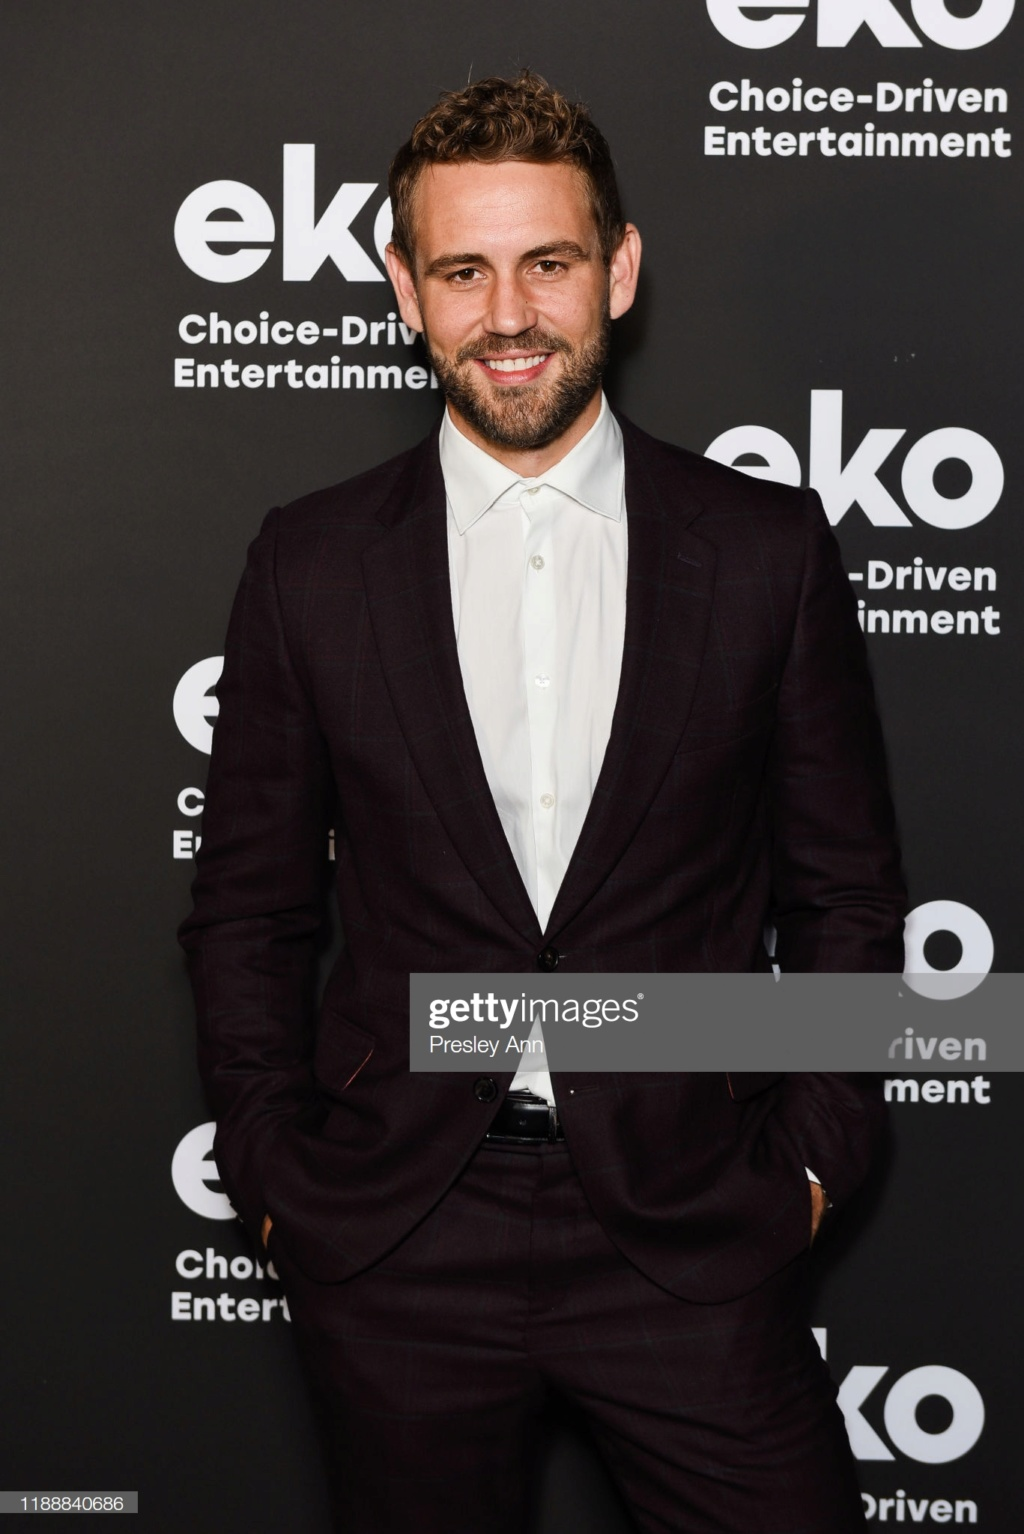 Nick Viall - Bachelor 21 - FAN Forum - Discussion #27 - Page 66 Gettyi16